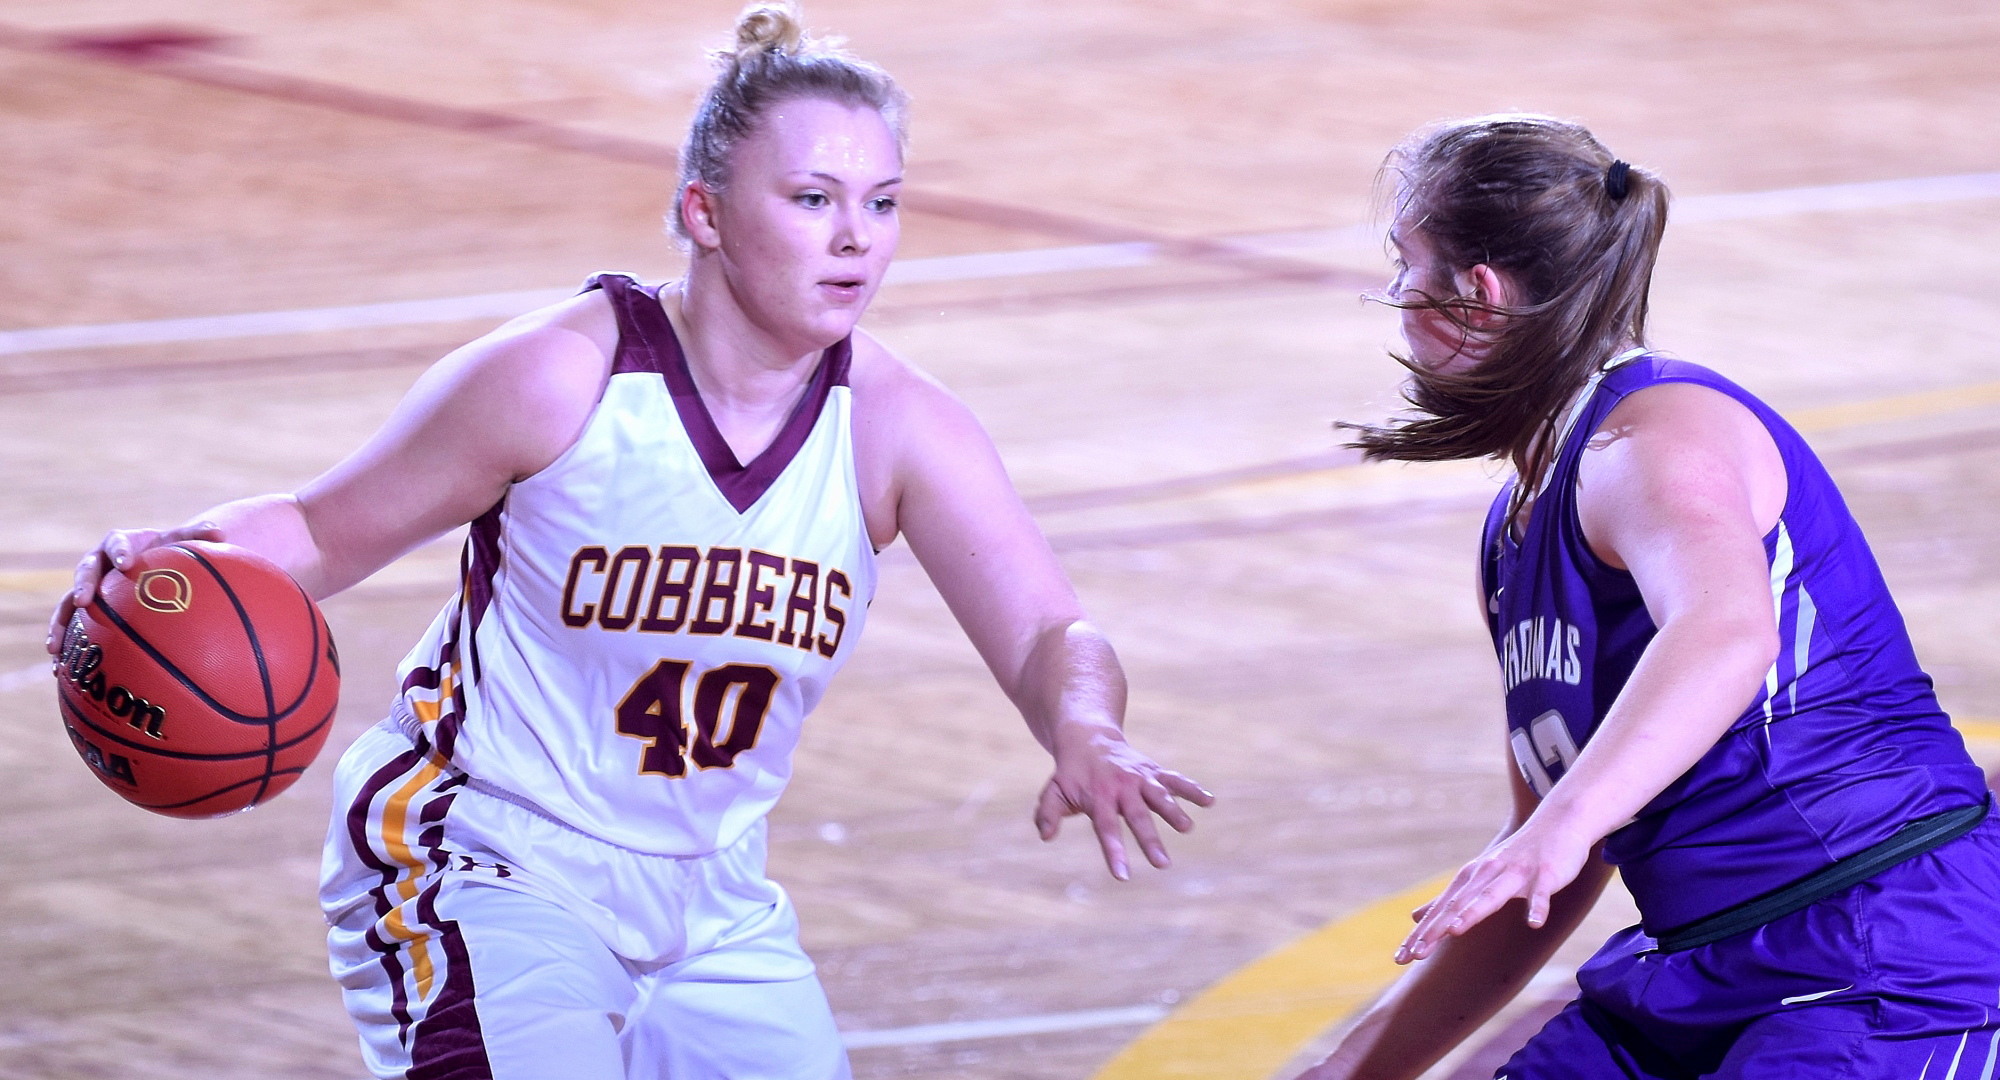 Junior Mira Ellefson finished with a team-high 16 points and made two of the Cobbers' 14 straight free throws at the end of the team's 81-72 win at St. Olaf.